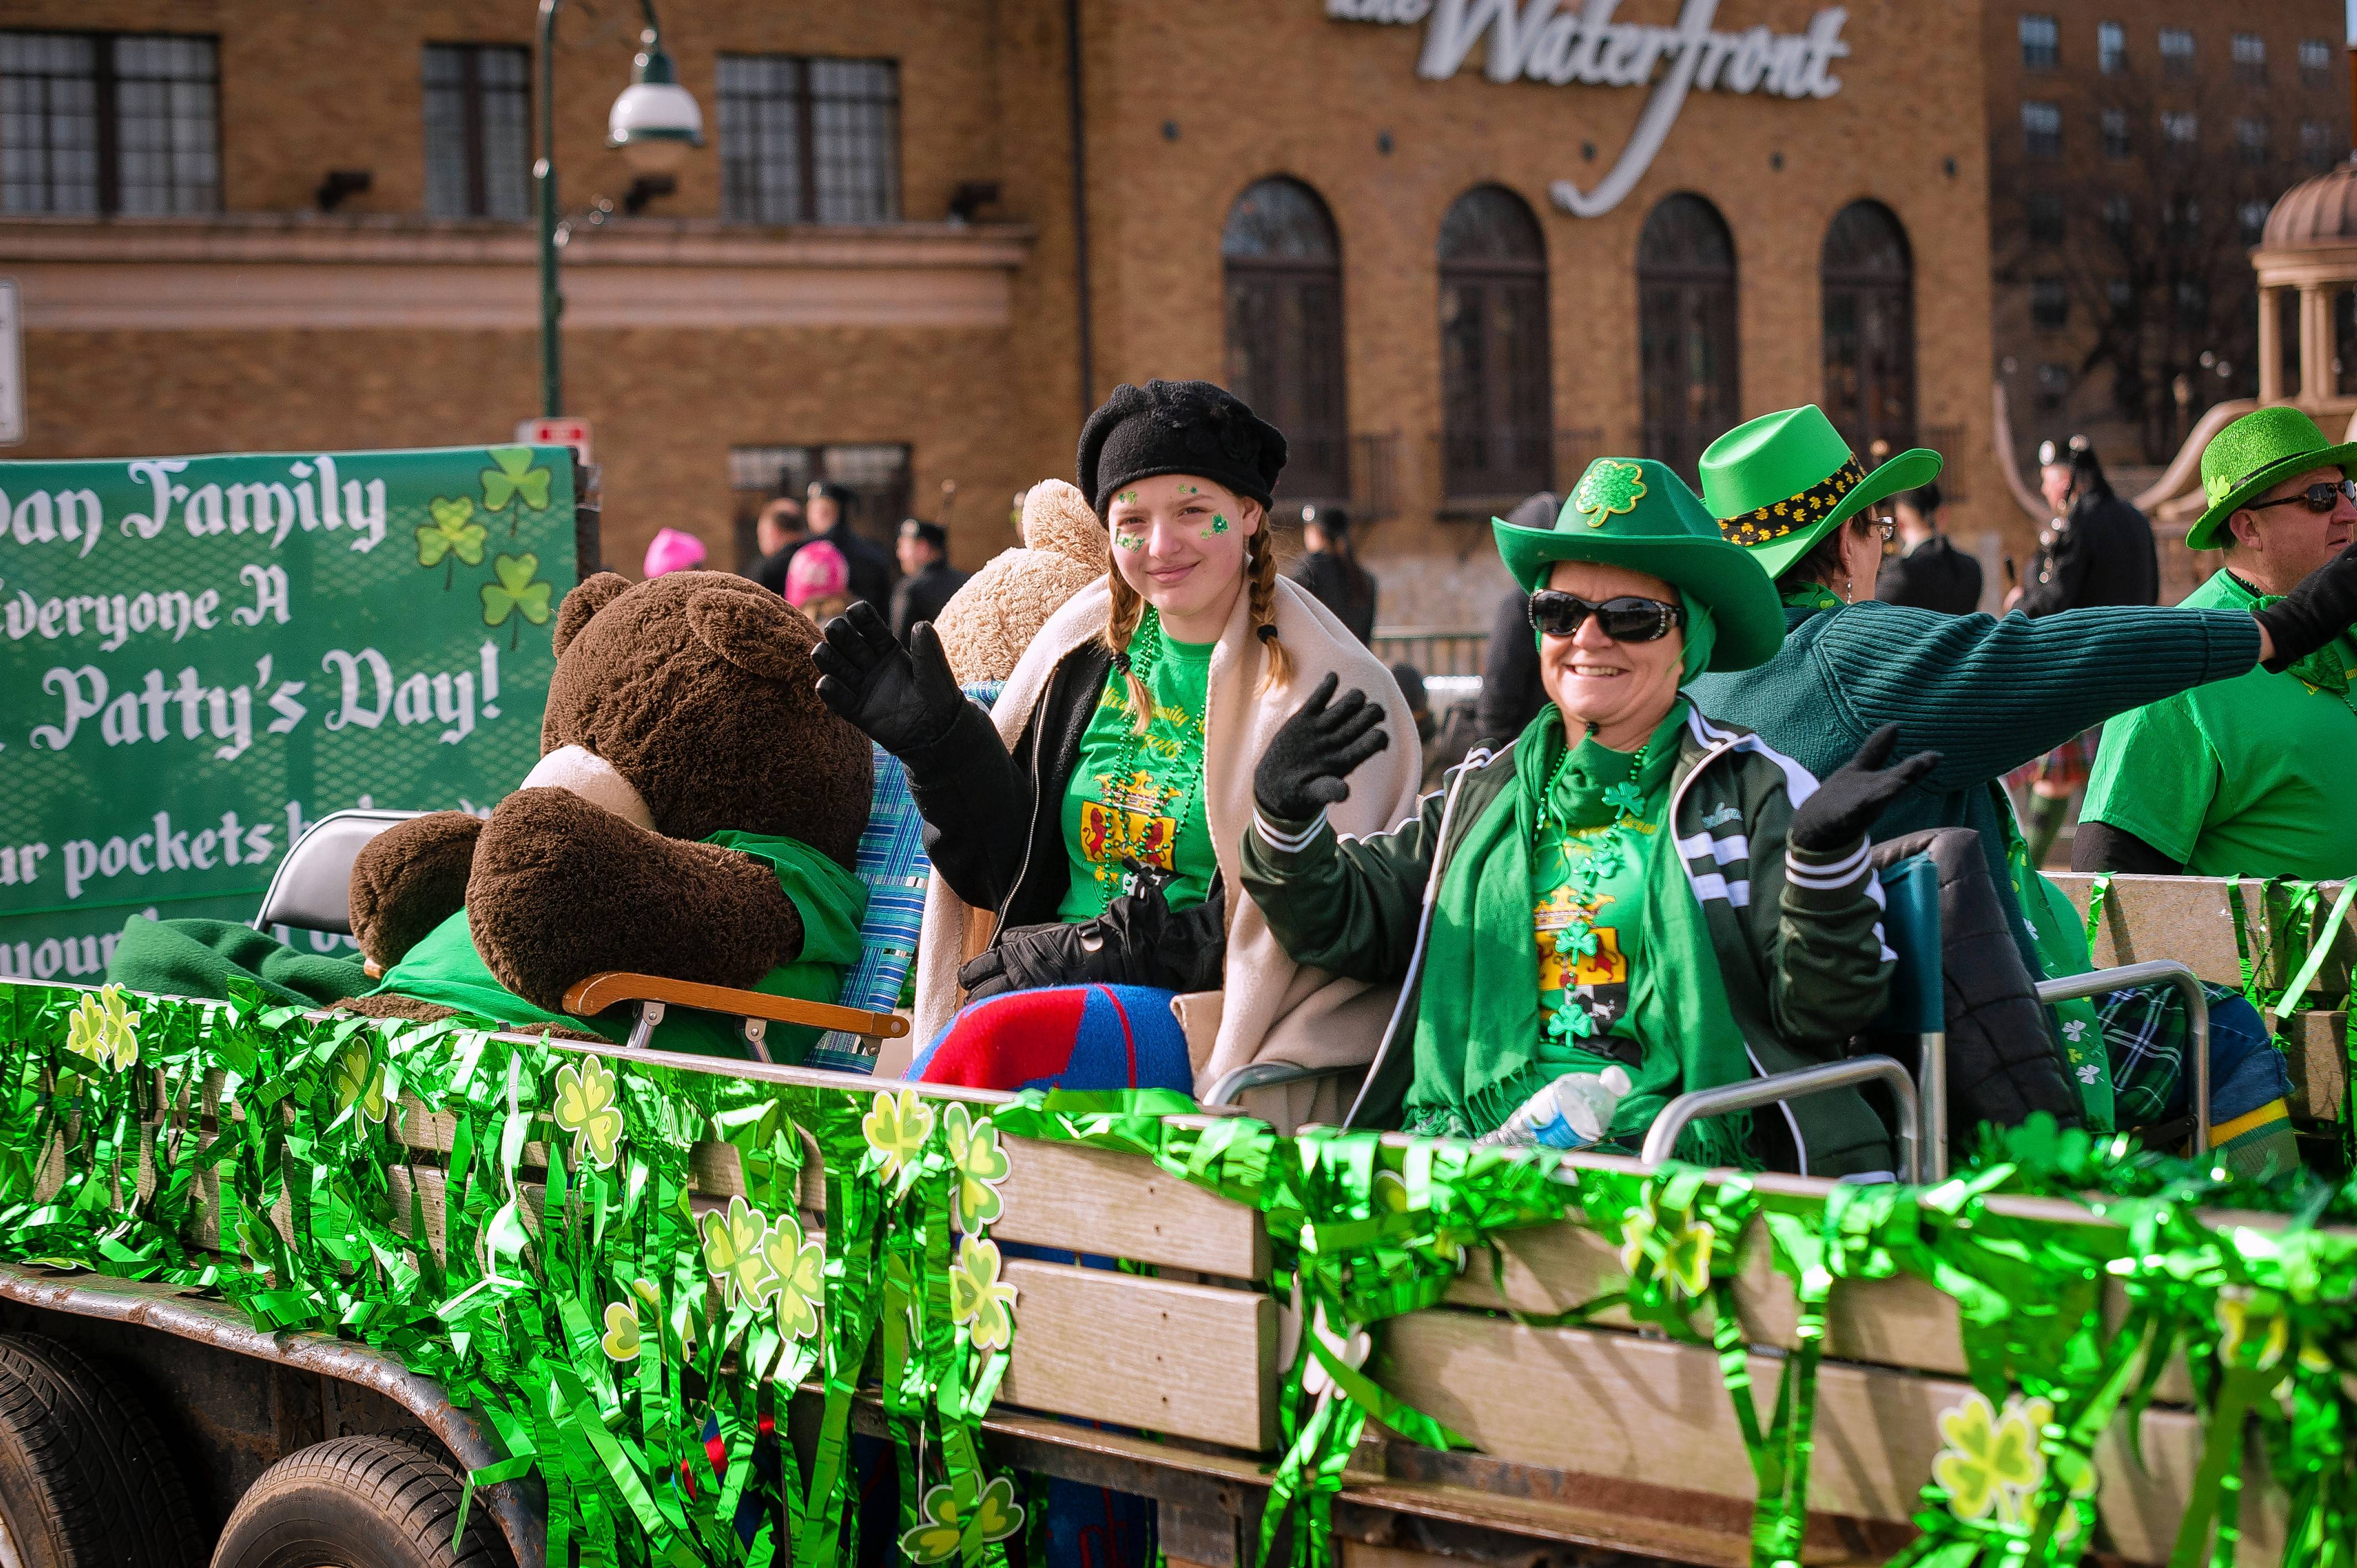 The St. Charles St. Patrick's Parade gets the holiday off to an early start Saturday, March 10.